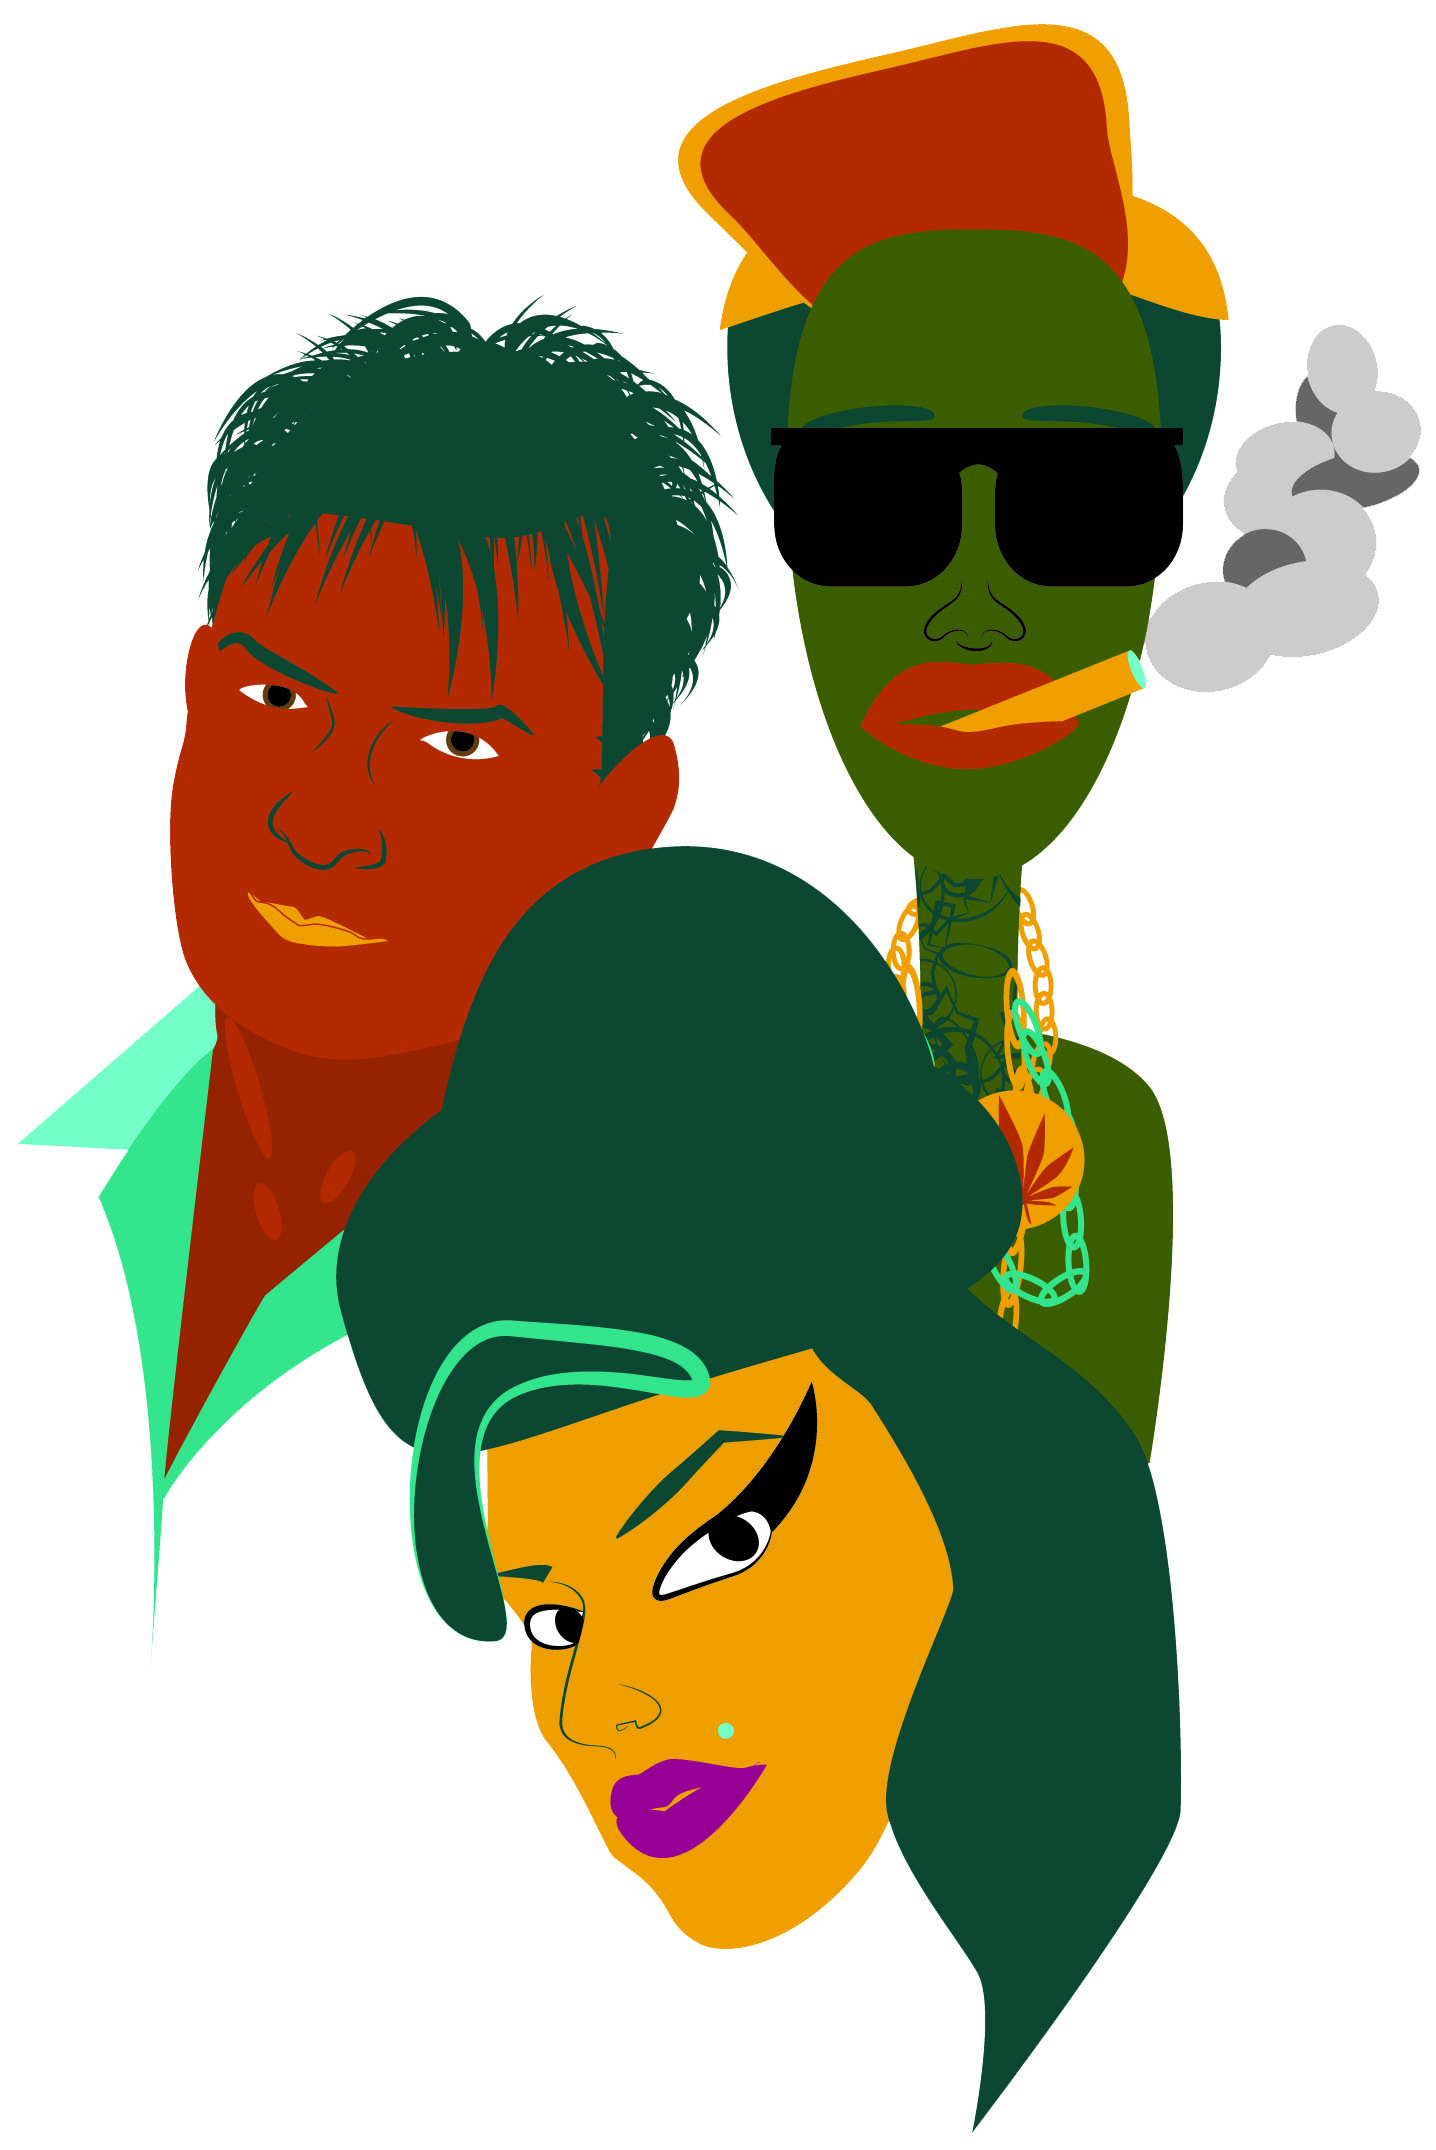 Pop culture portrayal of. Alcohol clipart drug use